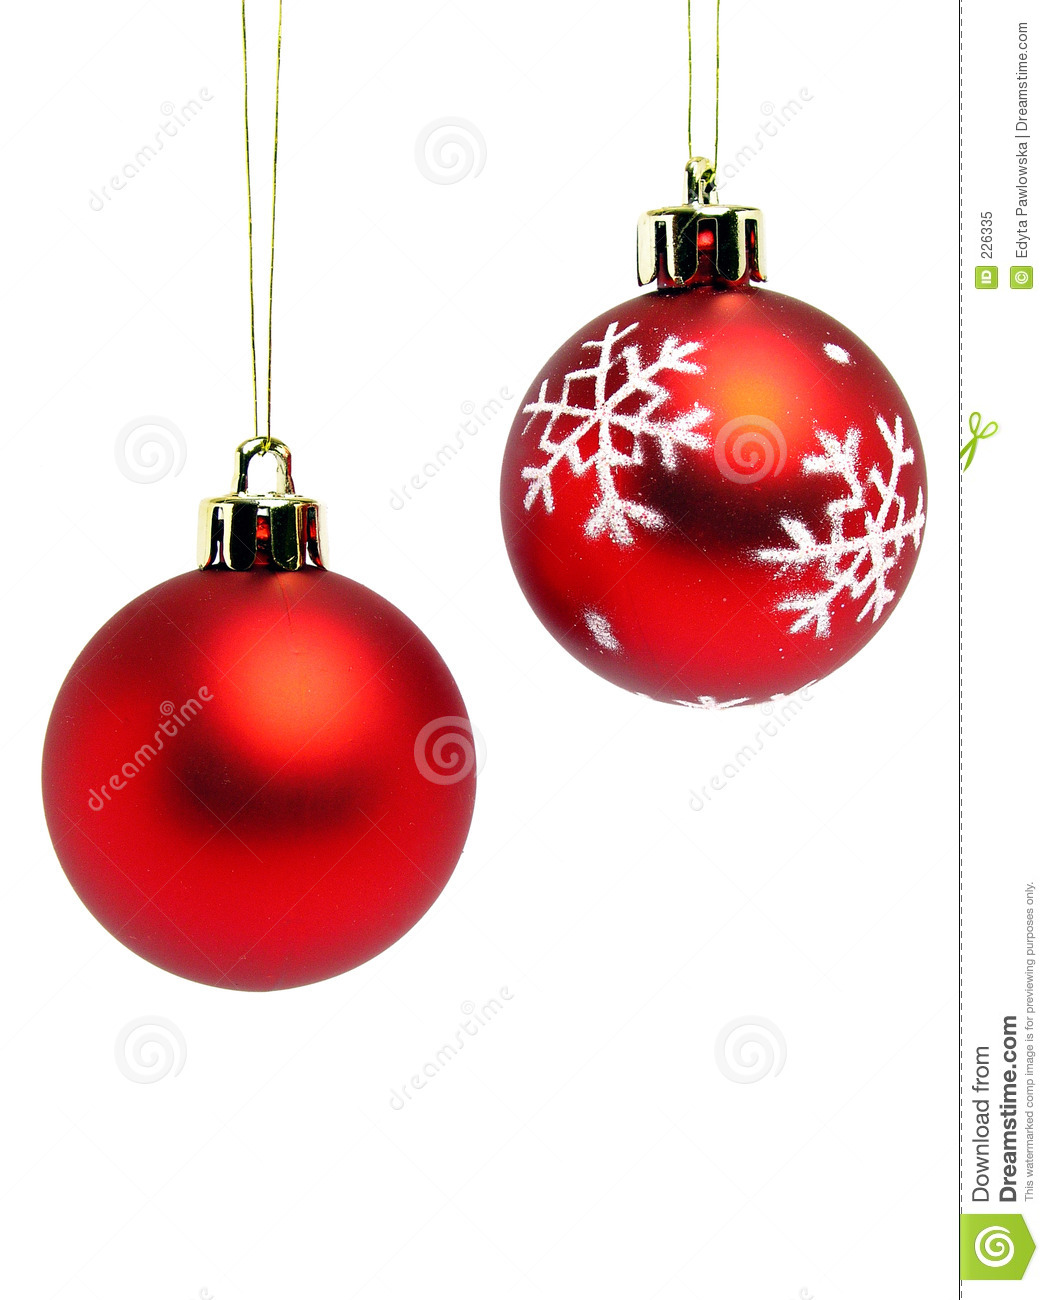 red christmas balls royalty free stock photo image 226335. Black Bedroom Furniture Sets. Home Design Ideas